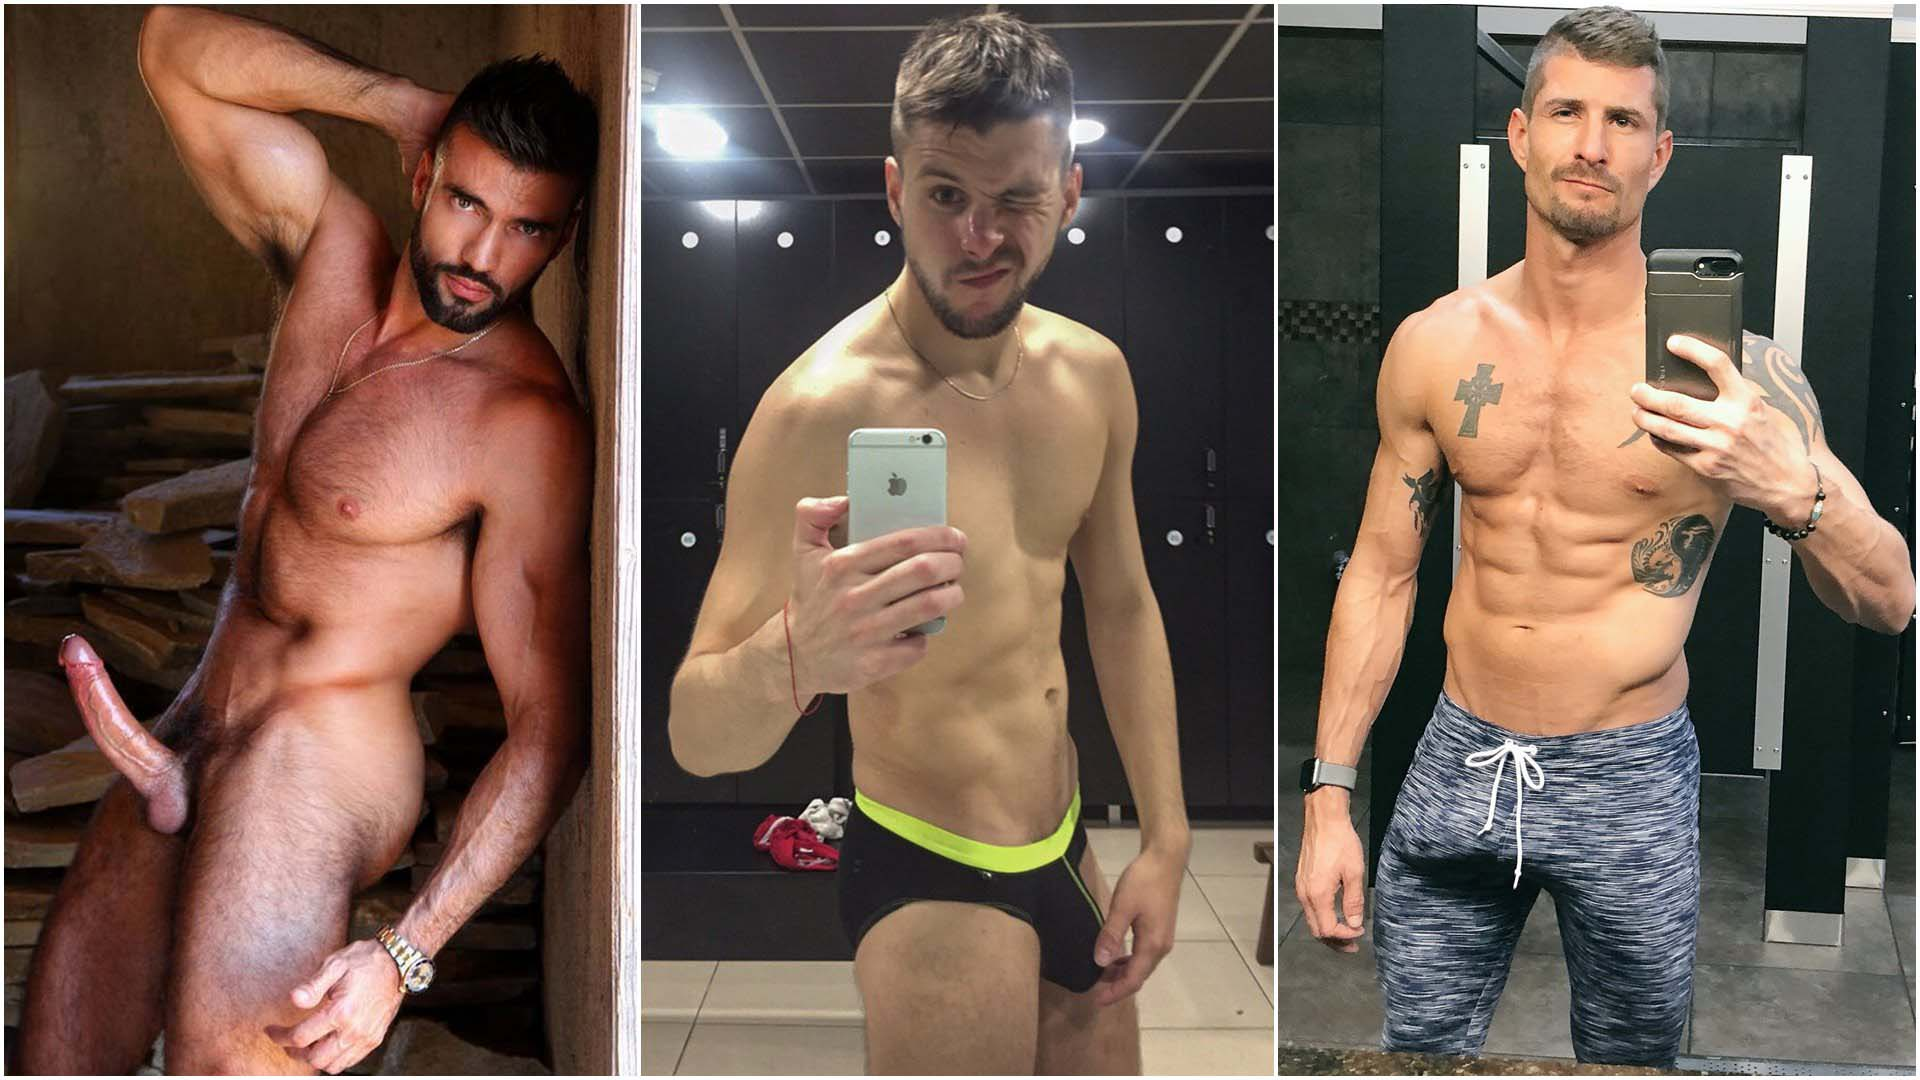 Photo of Gay Porn NOW In Love | Enamorado de Dmitry Osten, folla saludos de Viktor Rom, Jason Vario se marca un instinto básico, follad a Wally, deslechando al leñador, tragalefas y pajotes lecheros